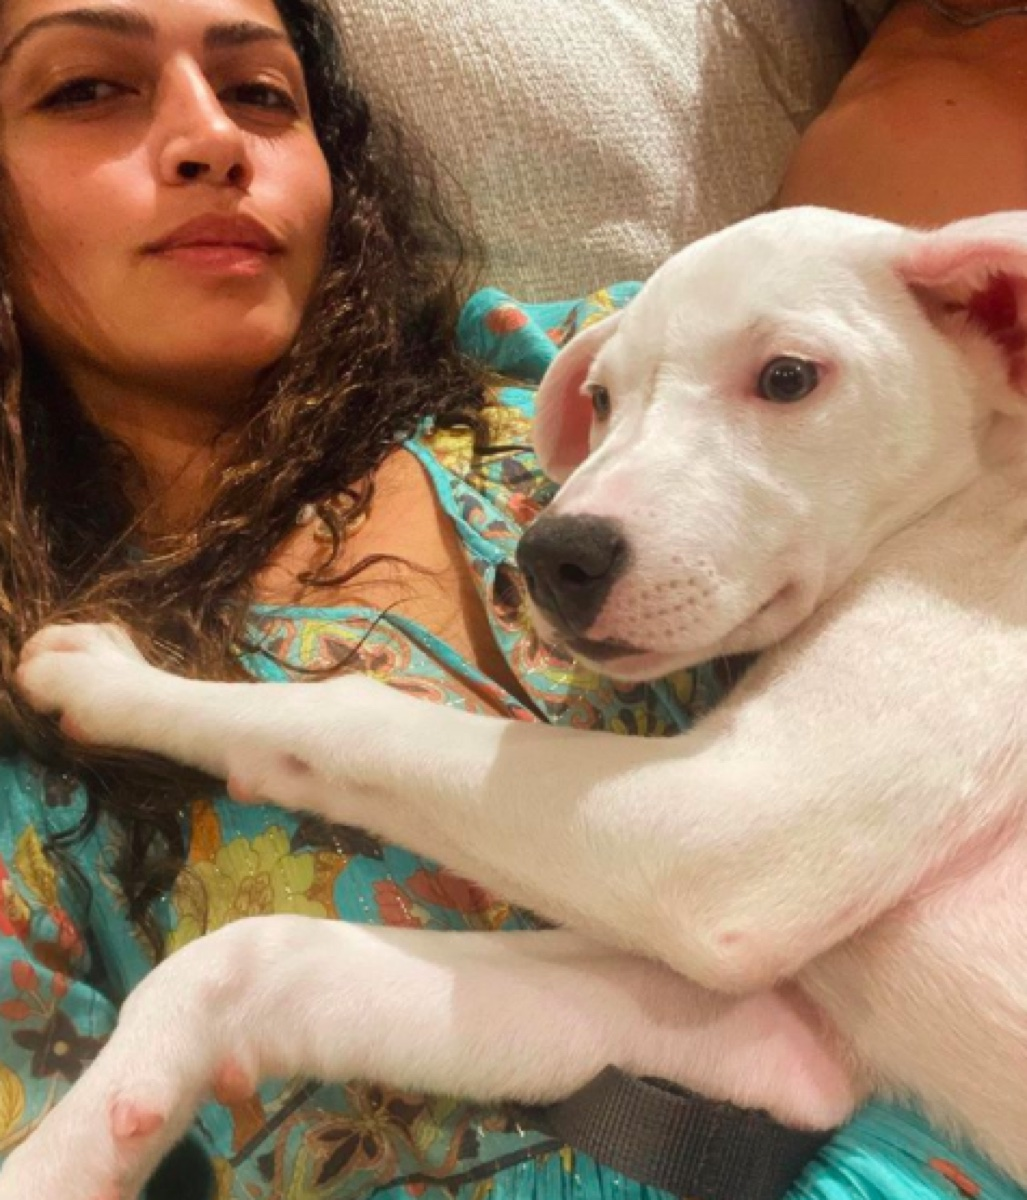 Camila Alves with adopted puppy on Instagram